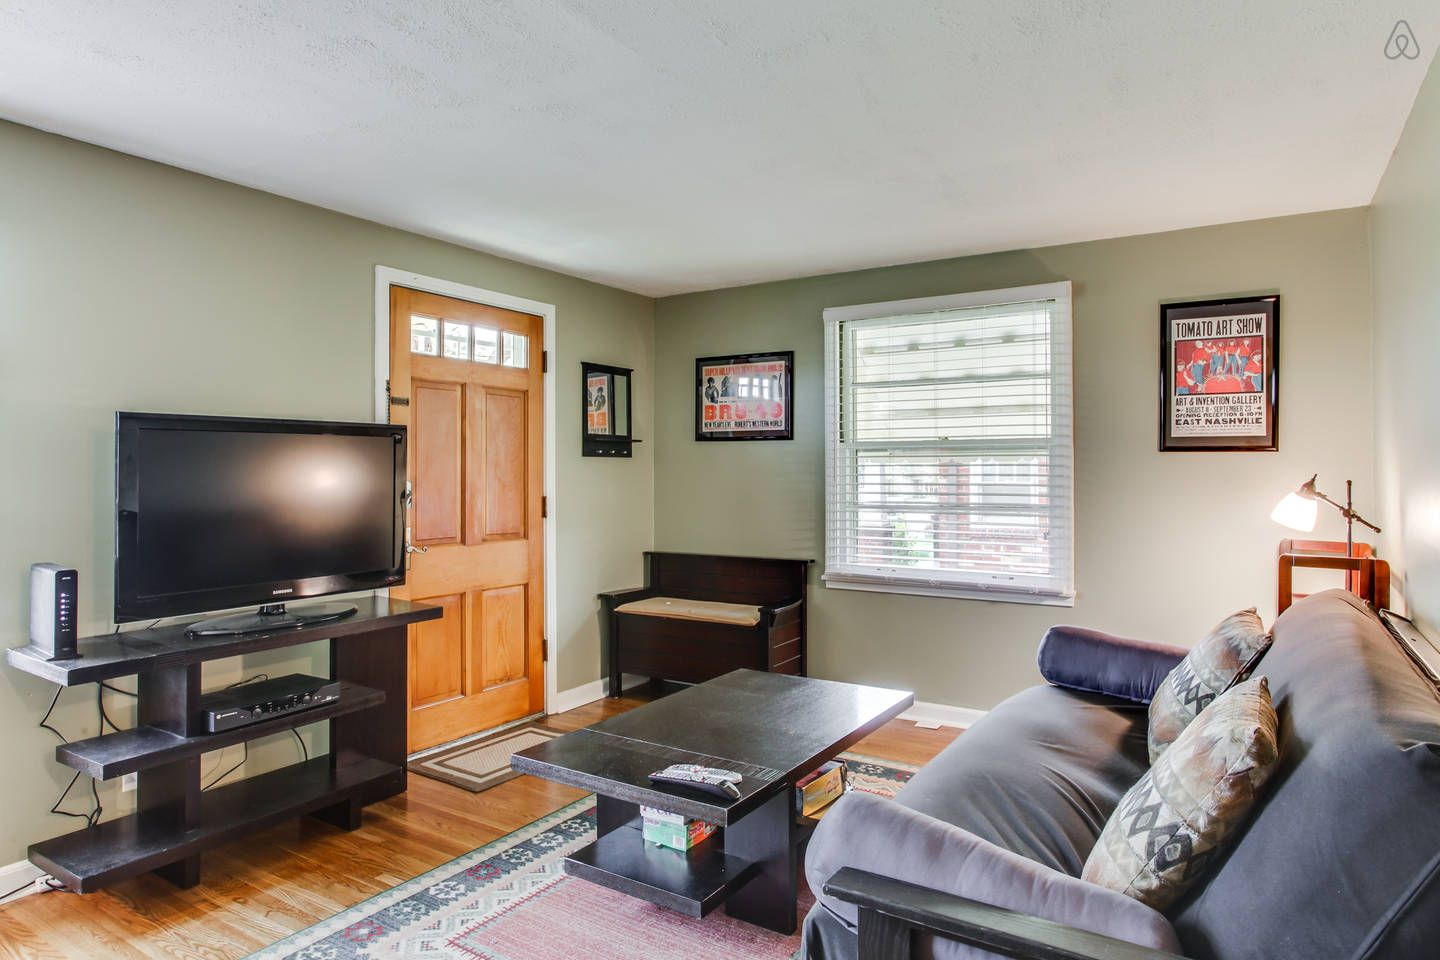 Cozy East Nashville Apt. B - vacation rental in Nashville, Tennessee. View more: #NashvilleTennesseeVacationRentals